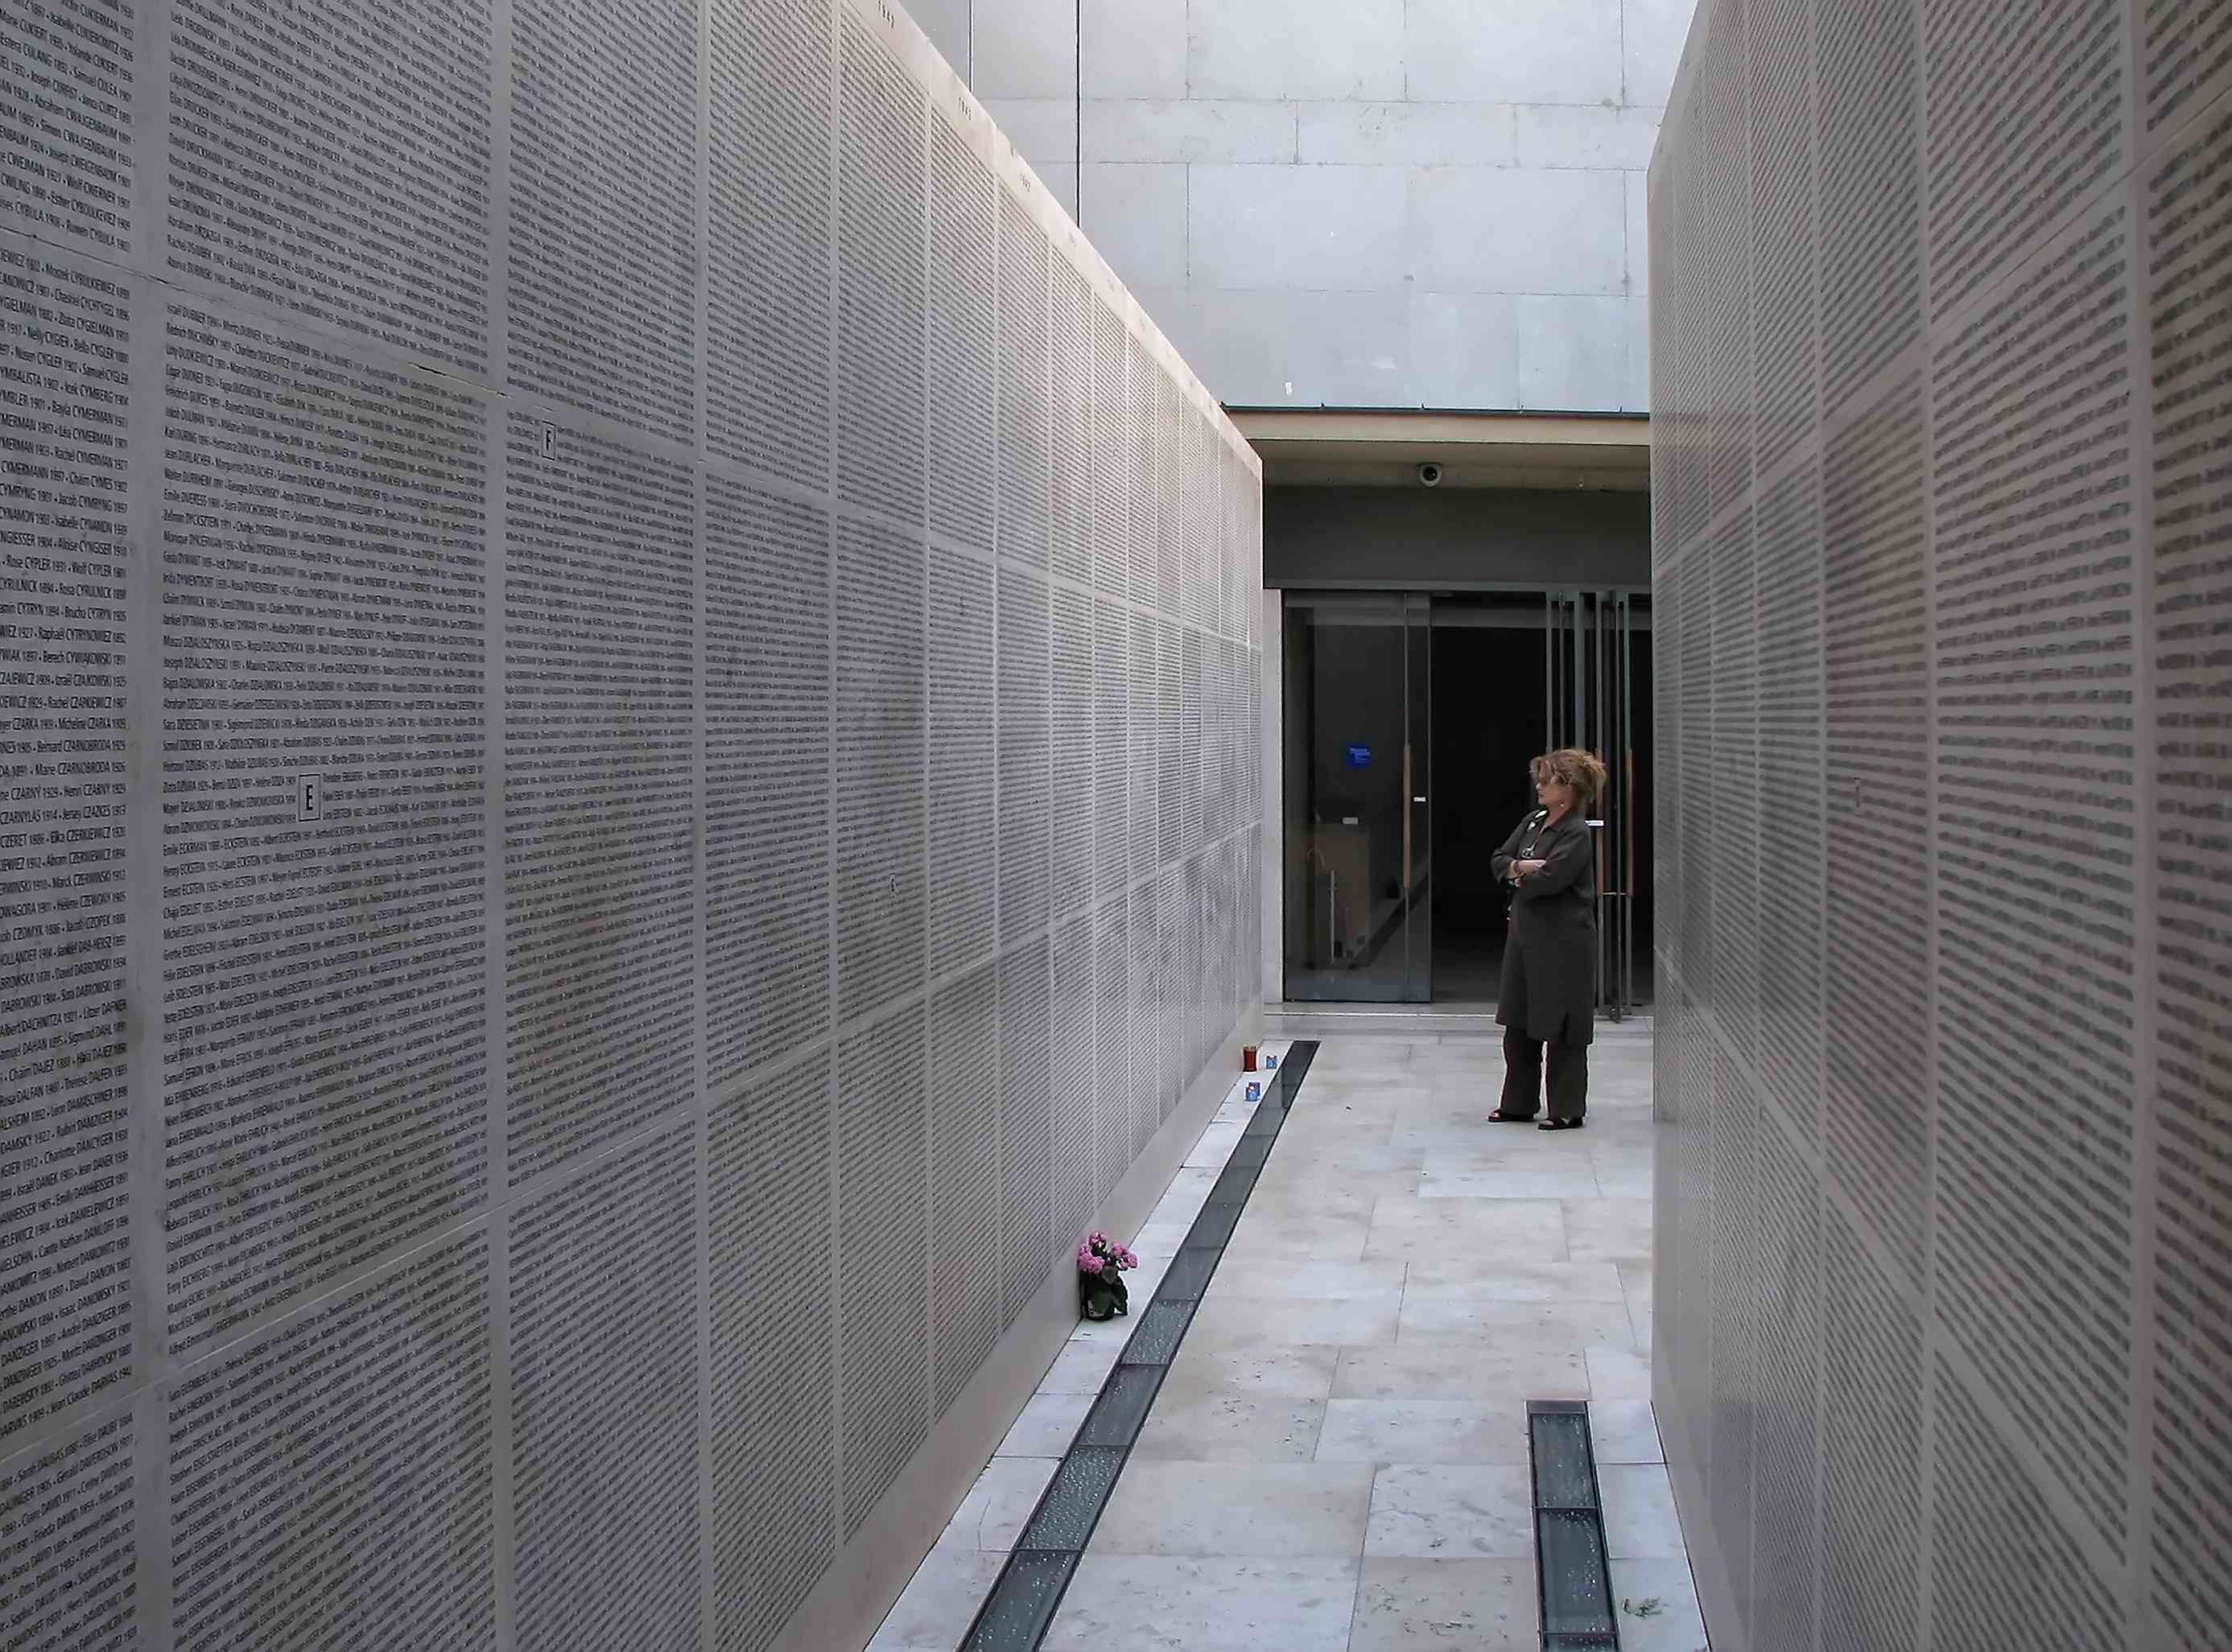 Paris, France - August 07, 2007: View of the Wall of Names in the Shoah Memorial